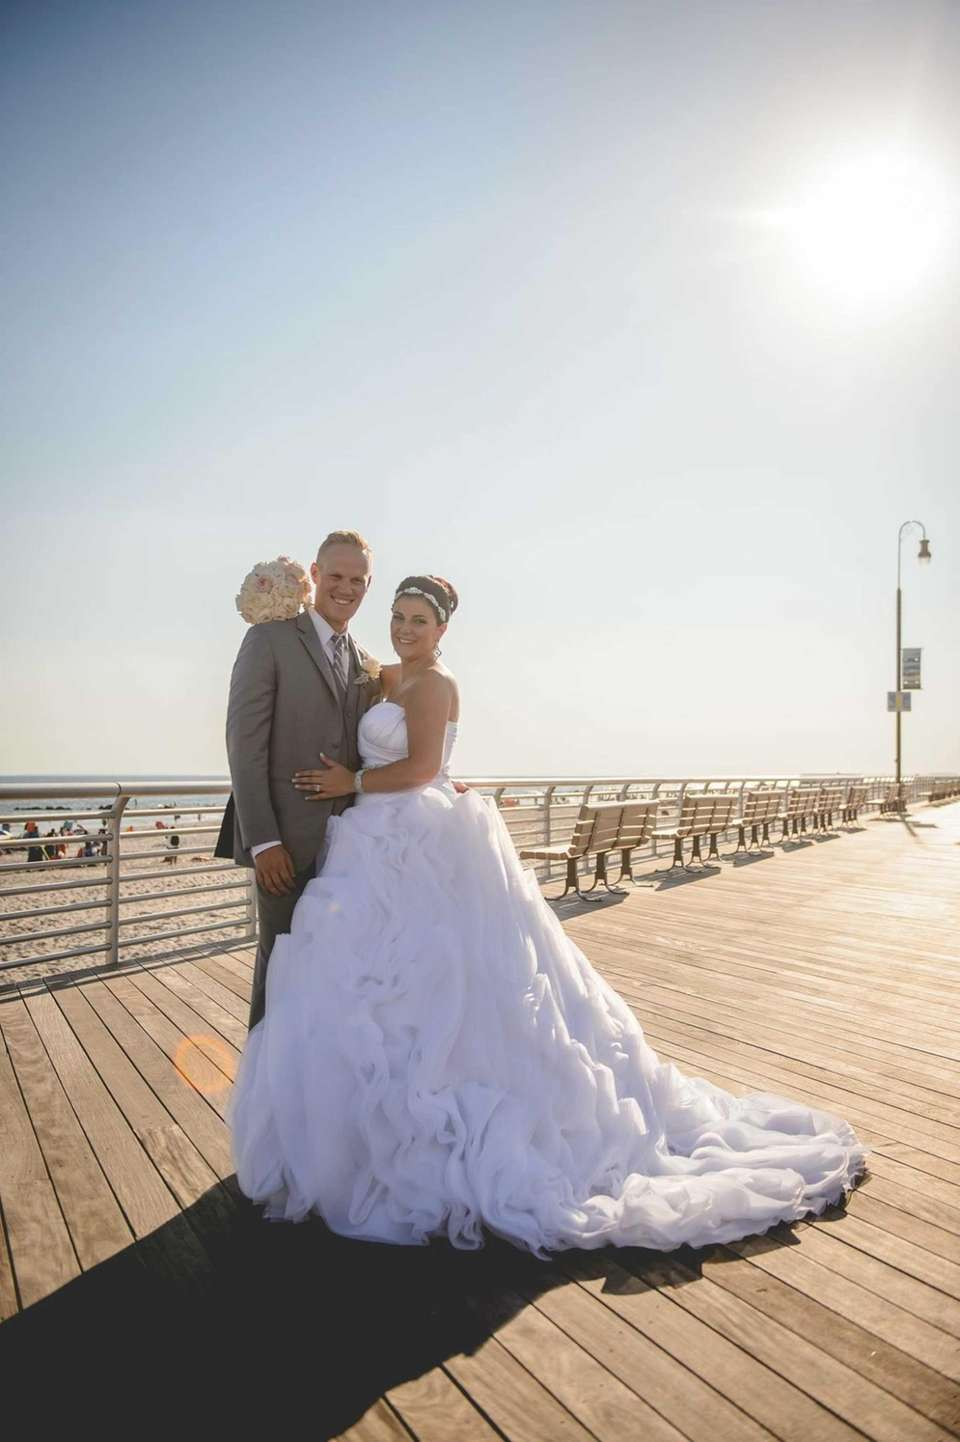 Gary and Maria Anderson were married 1 year